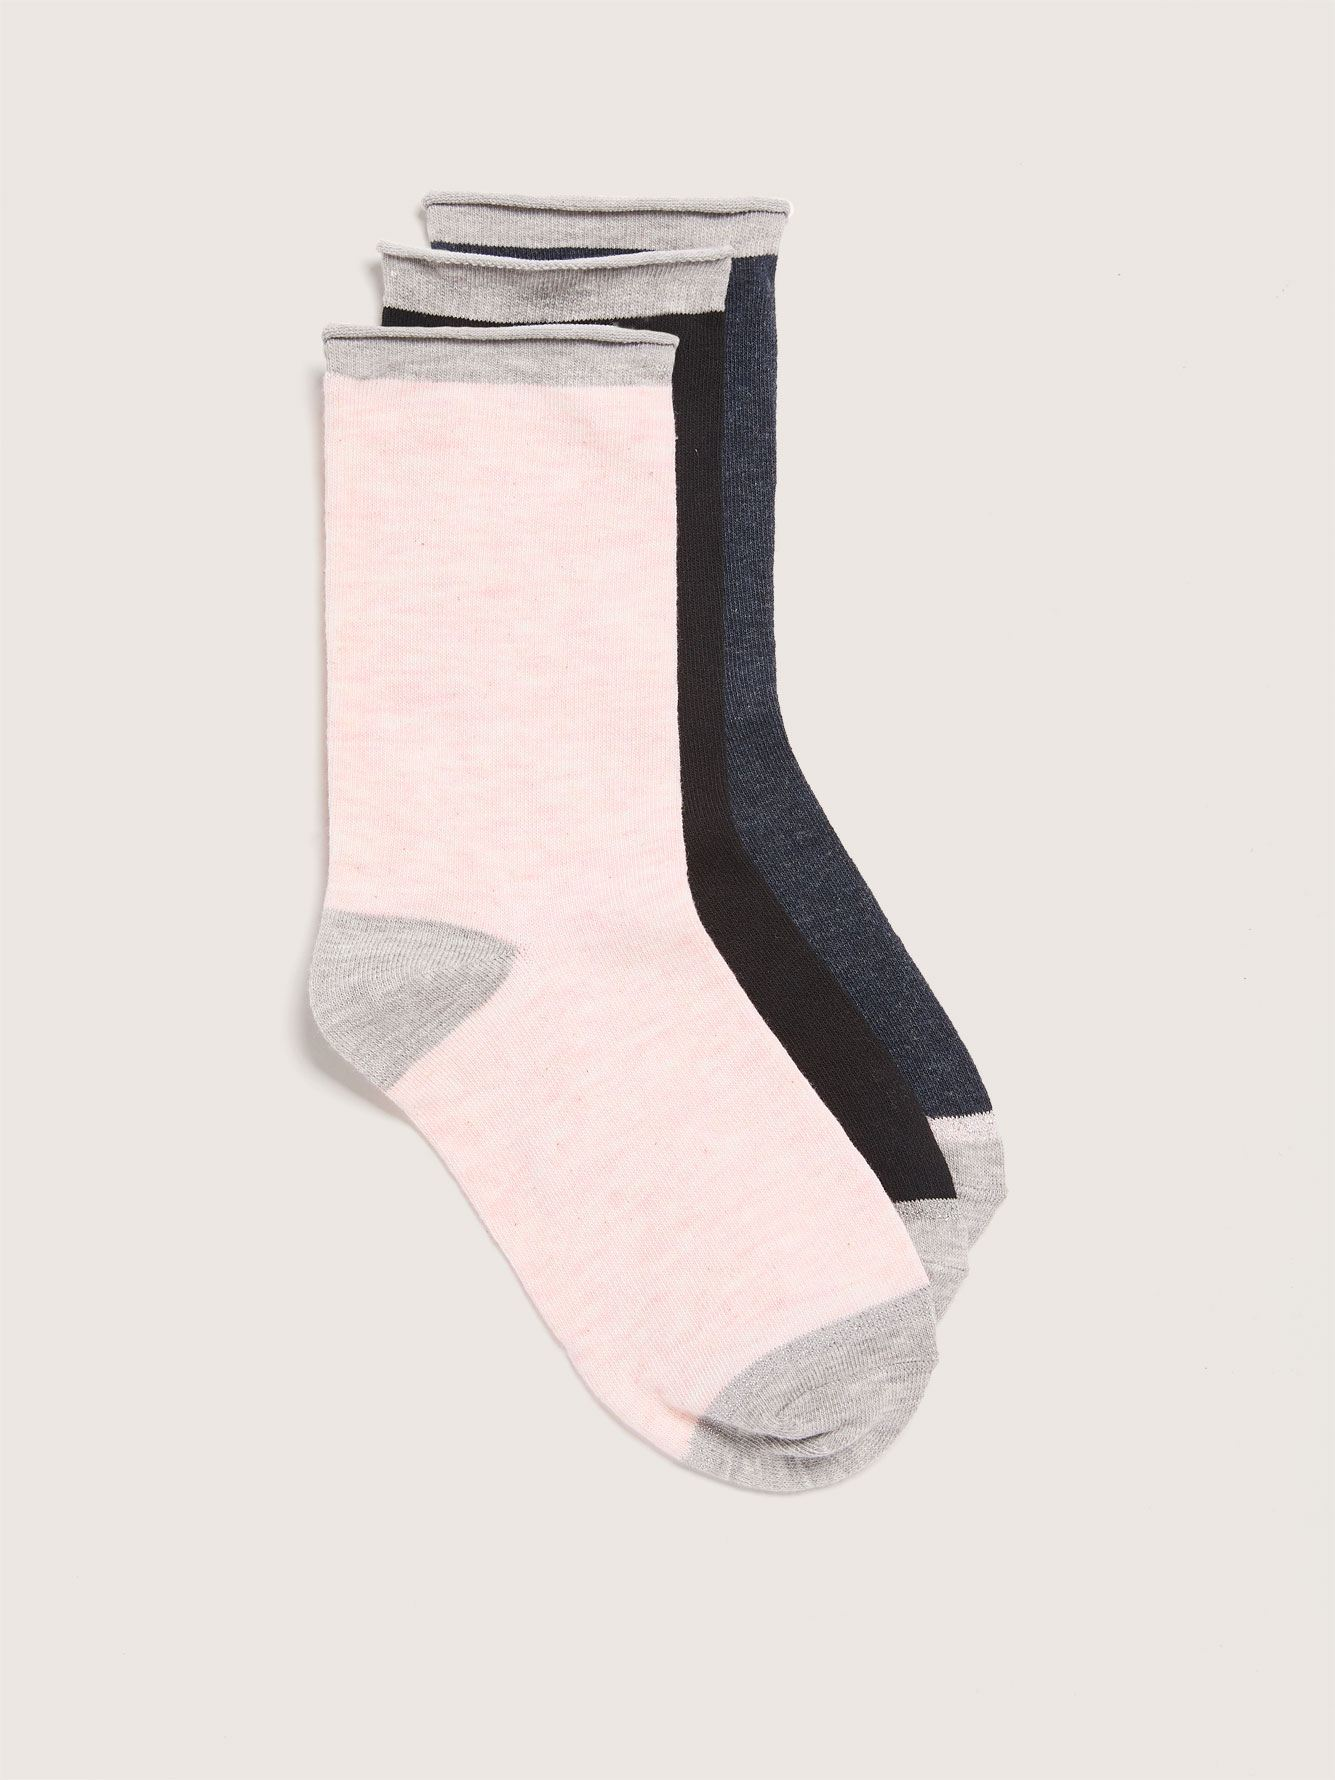 Wide Rolled Edge Socks, Pack of 3 - Addition Elle